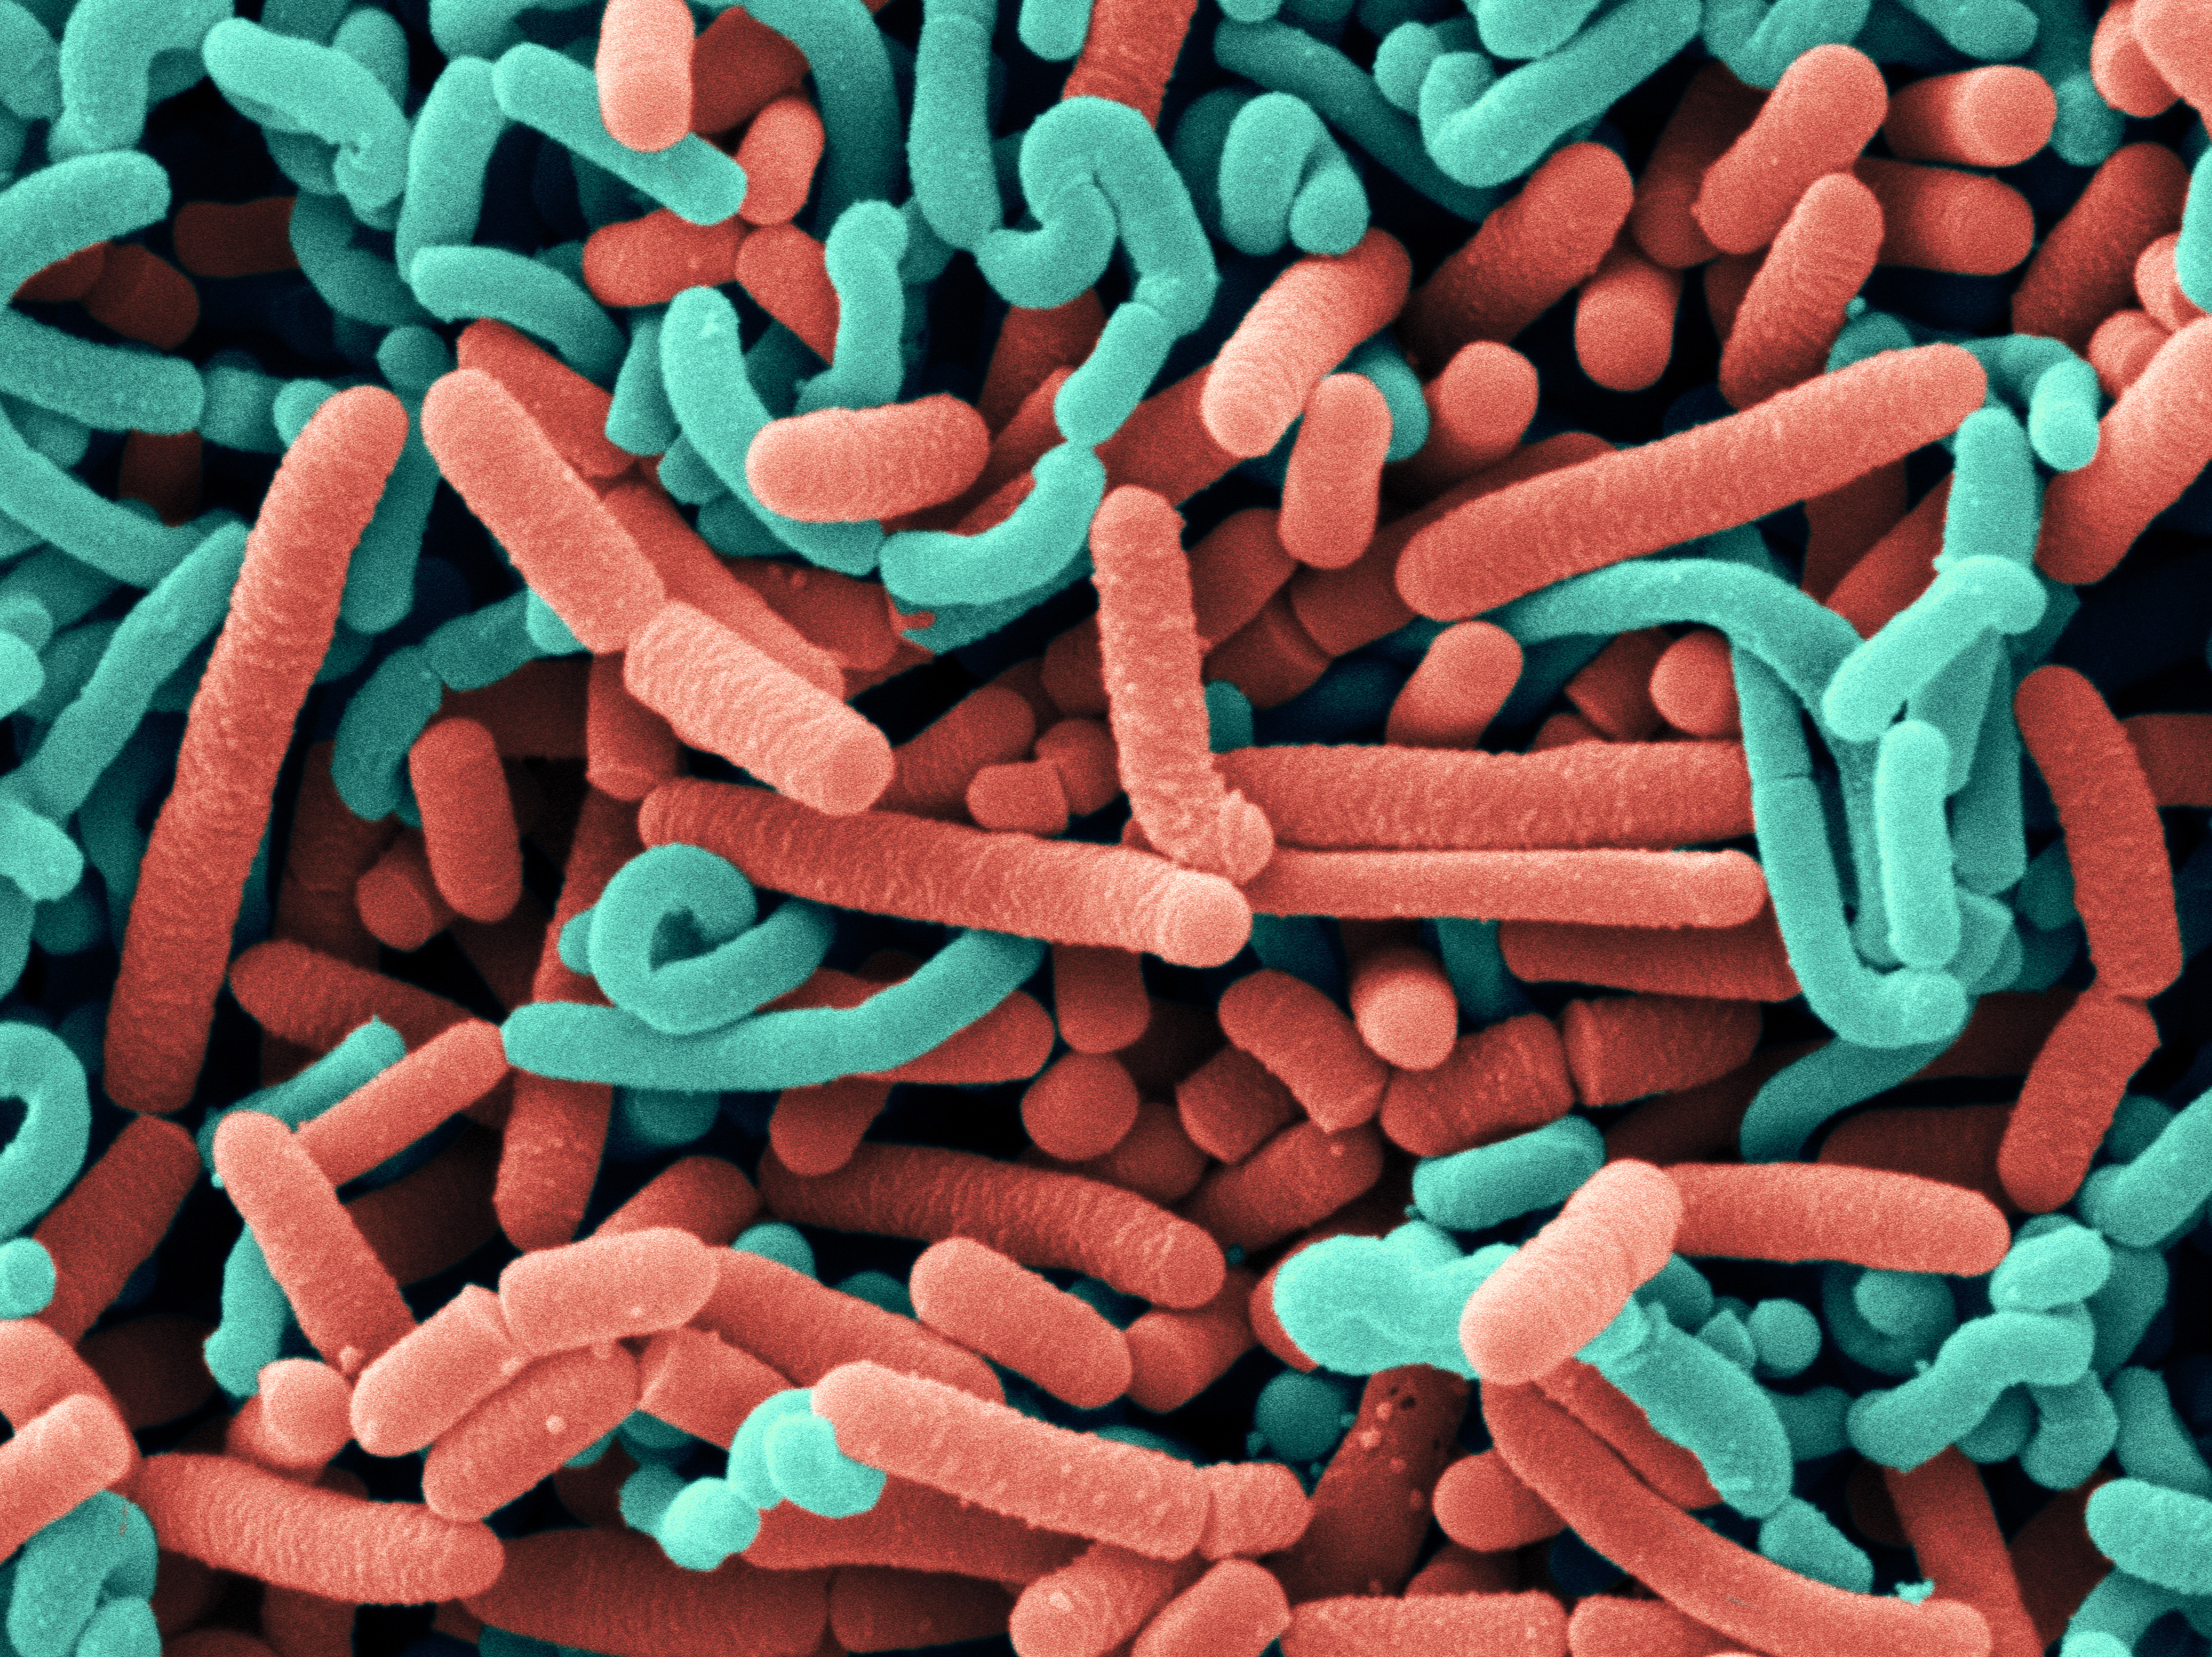 Probiotics: If you don't just poop them out, they may muck